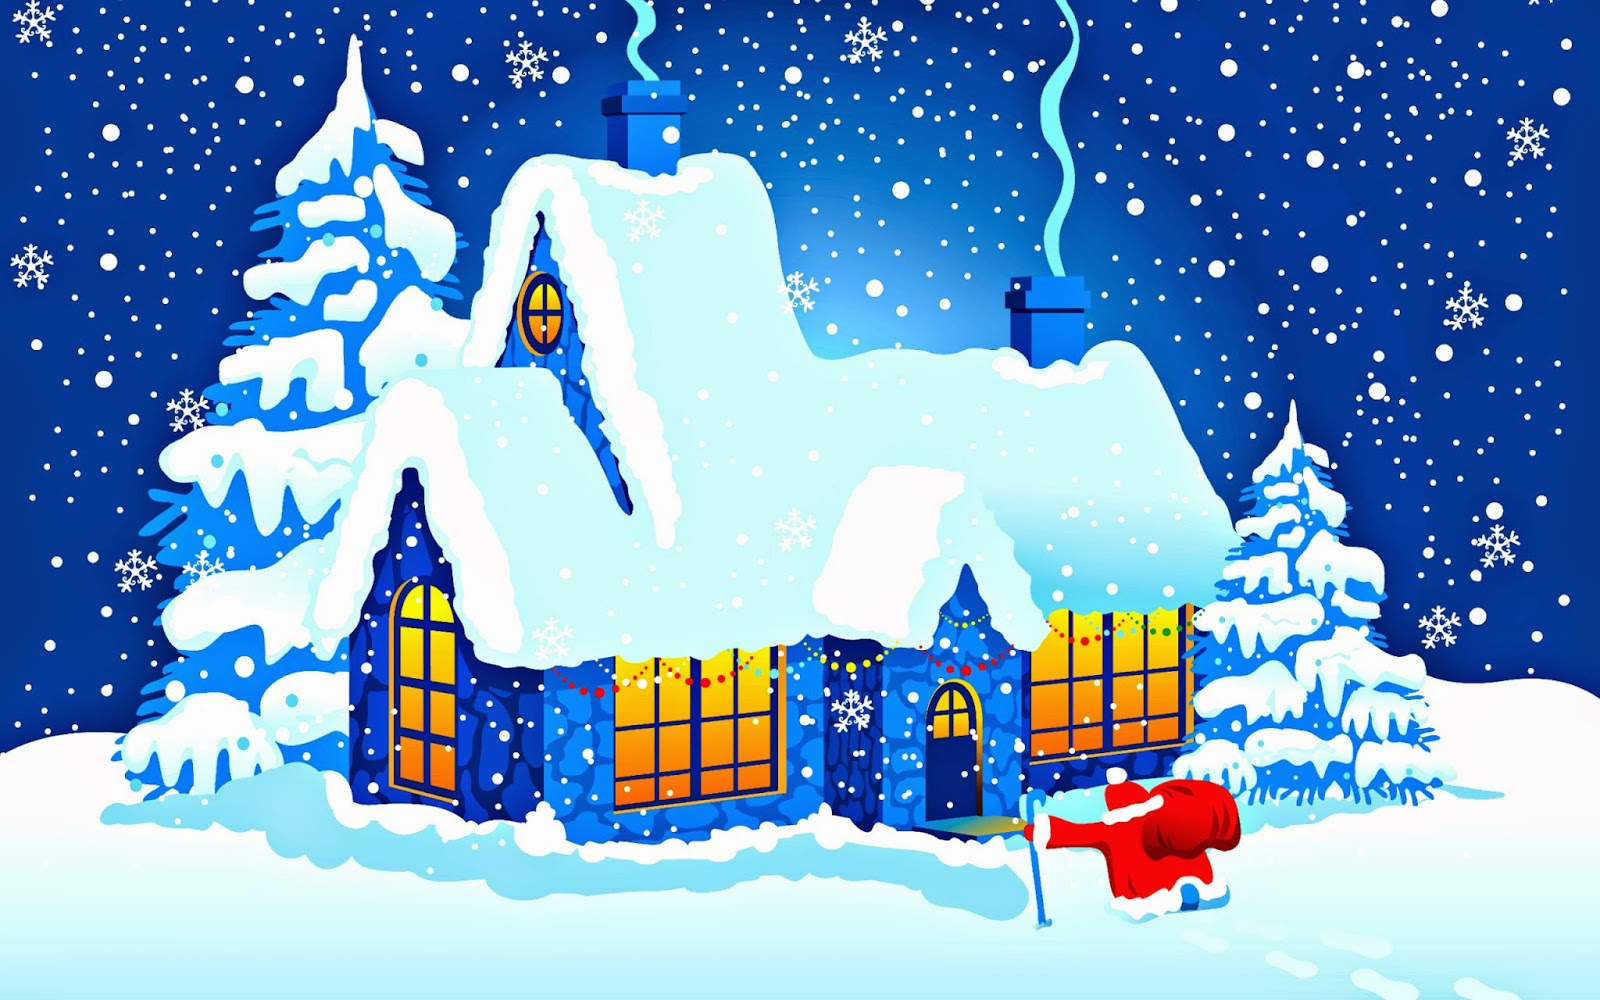 Christmas-snow-time-santa-travelling-at-night-cartoon-animation-image-picture.jpg